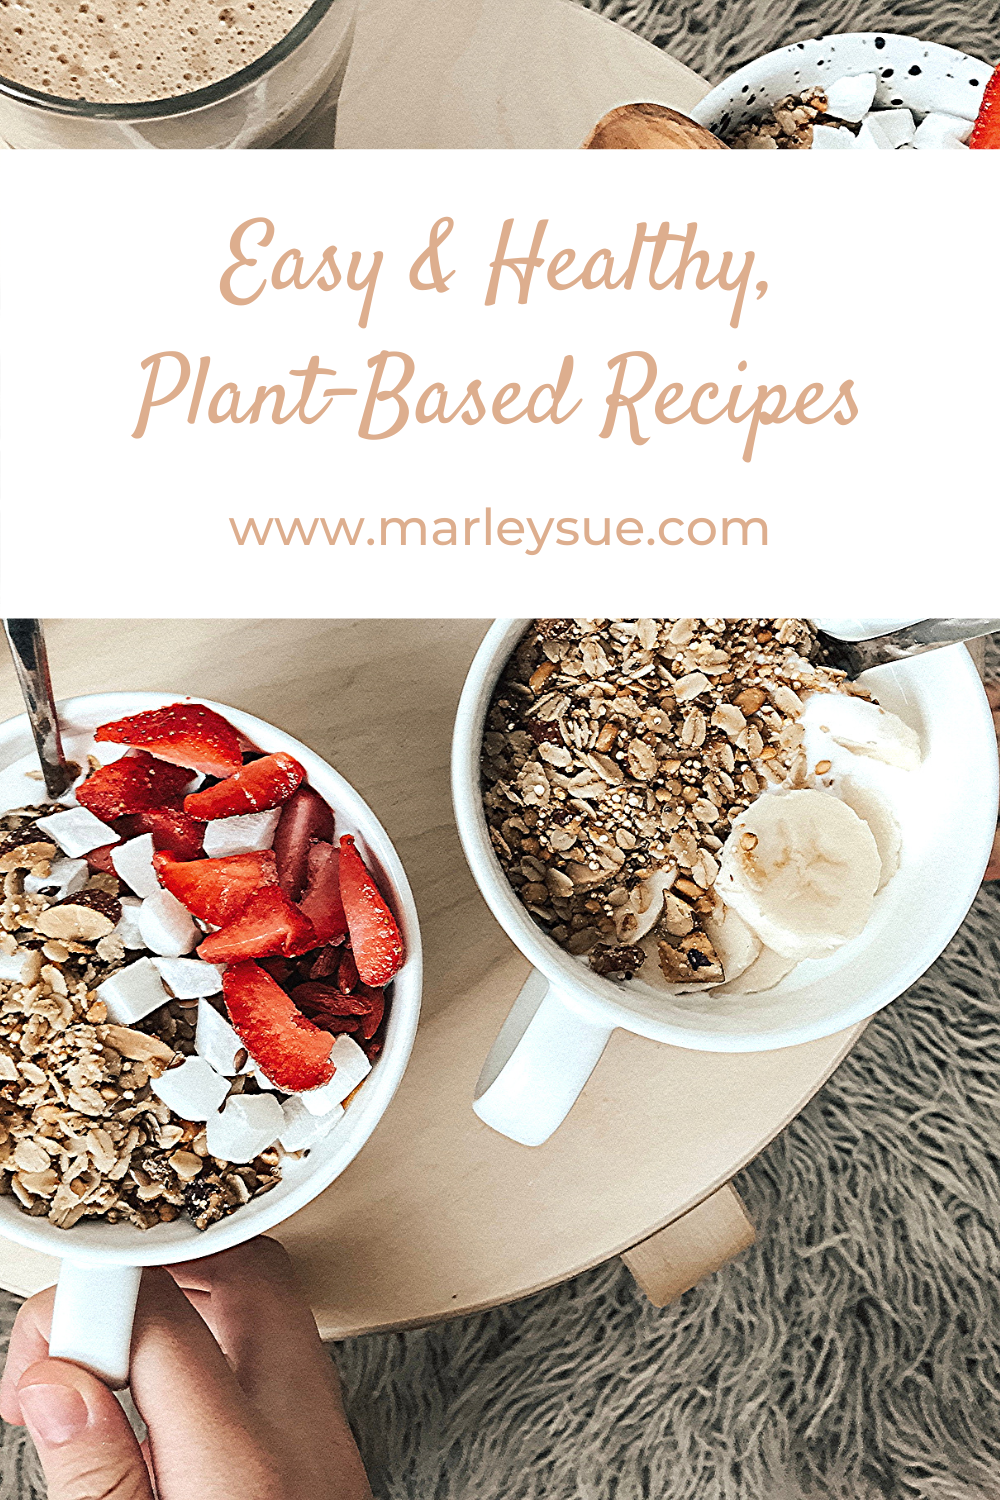 Visit www.marleysue.com for healthy recipes, plant-based recipes, and quick and easy meals to fuel your body and help you feel good.  #healthylifestyle #healthylifestyletips #healthyrecipes #easyhealthyrecipes #plantbasedrecipes #vegetarianrecipes #quickandeasymeals #foodisfuel #foodspiraiton #inspiration #marleysueblog #staylean #getleanandfit #fitness #healthyeating #weightlosstips #eatingforweightloss #healthyrecipesforwomen